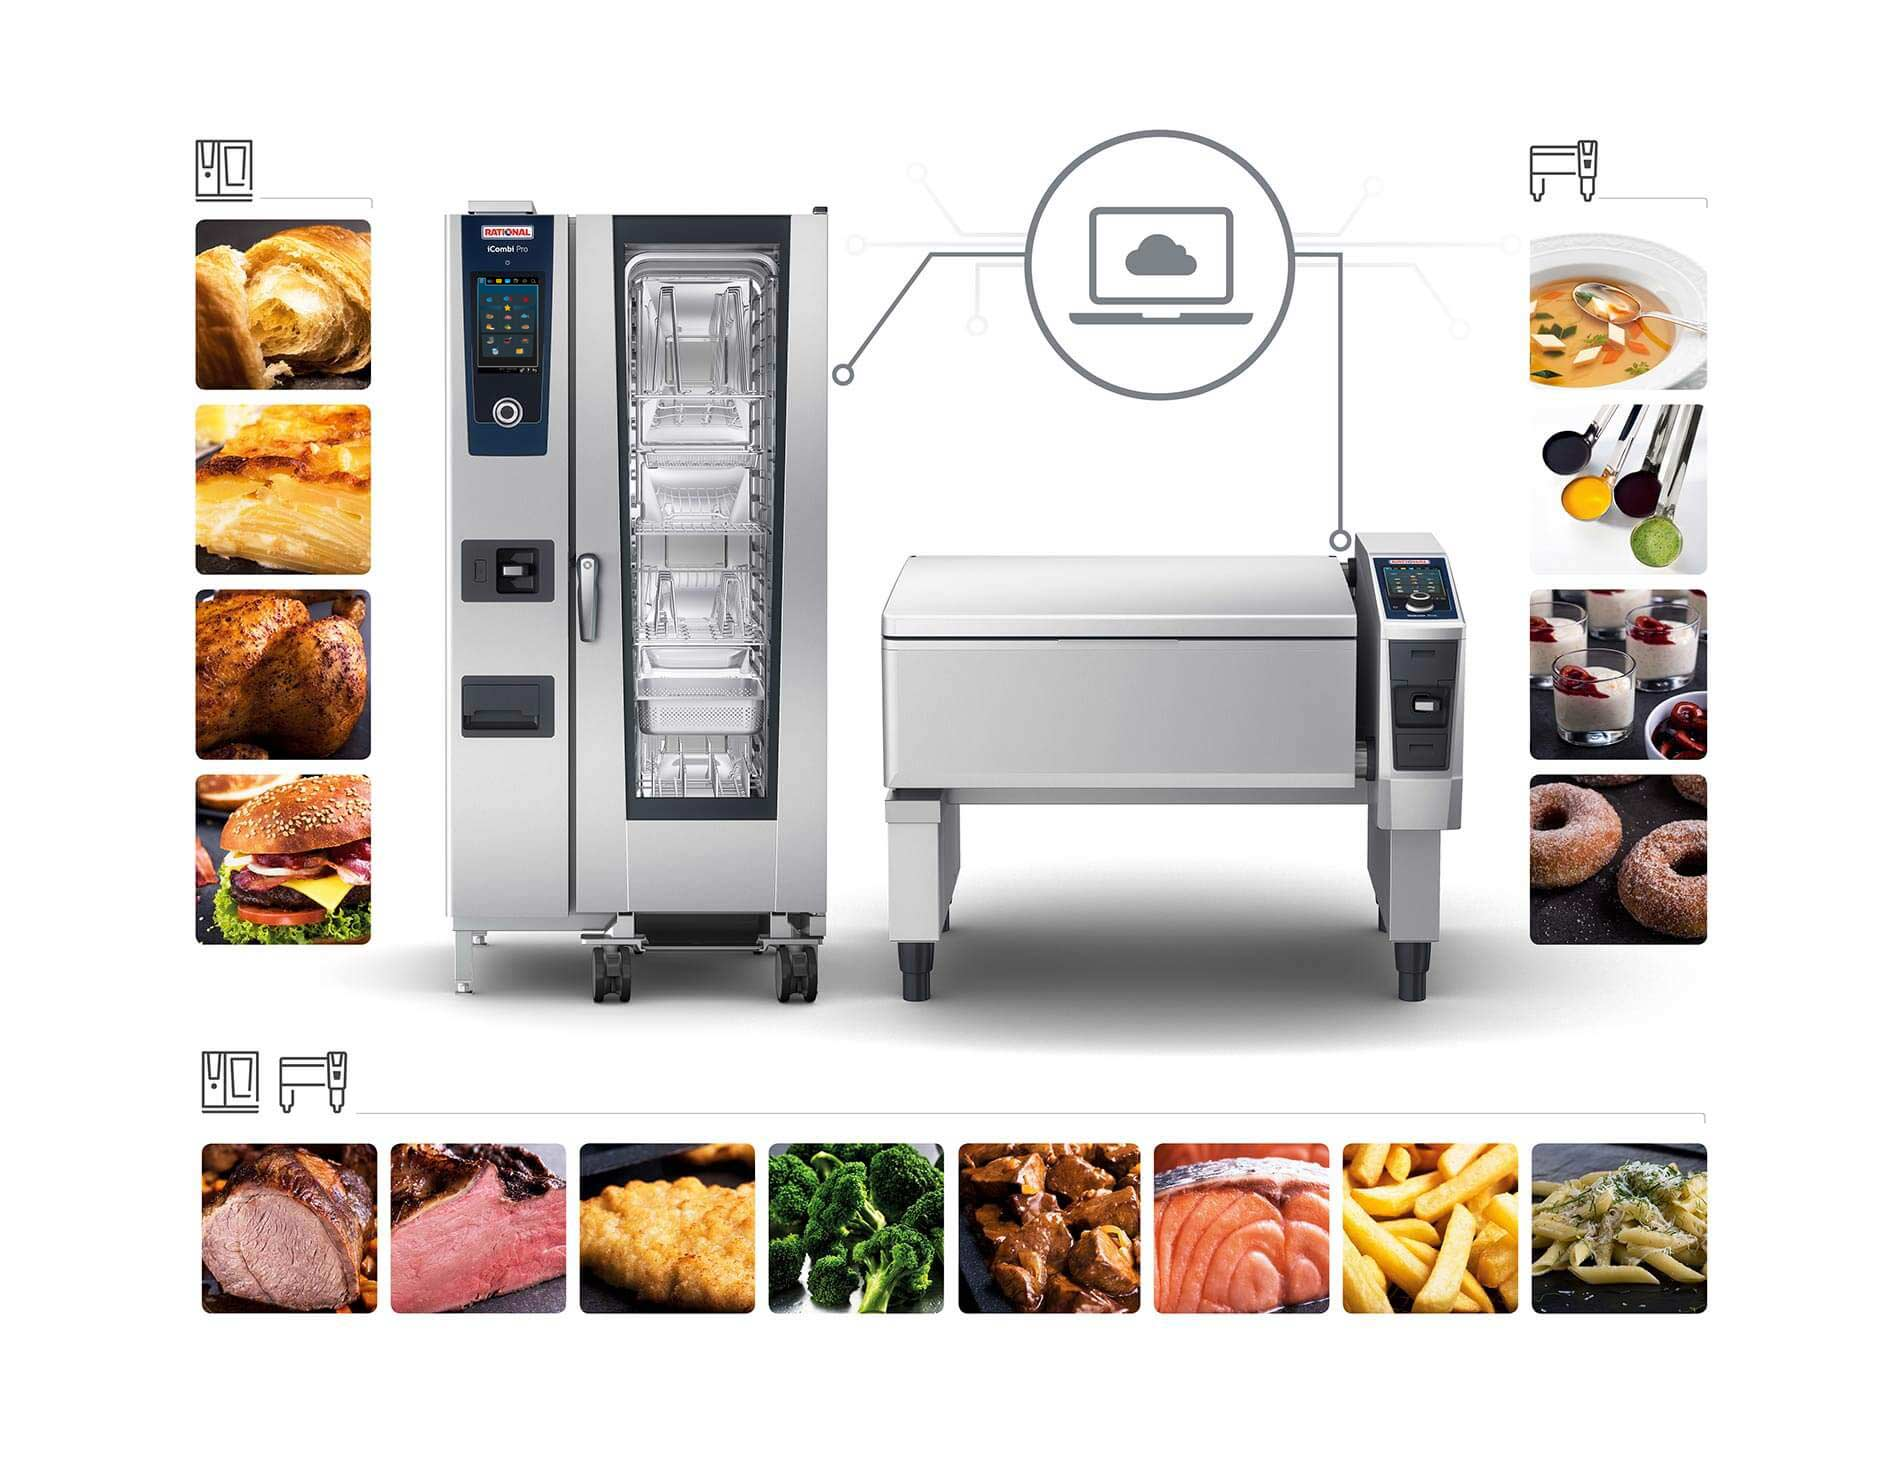 ikitchen-possibilities-ivario-pro-xl-icombi-pro-20-1-1-e-standard-accessories-connectedcooking-rational